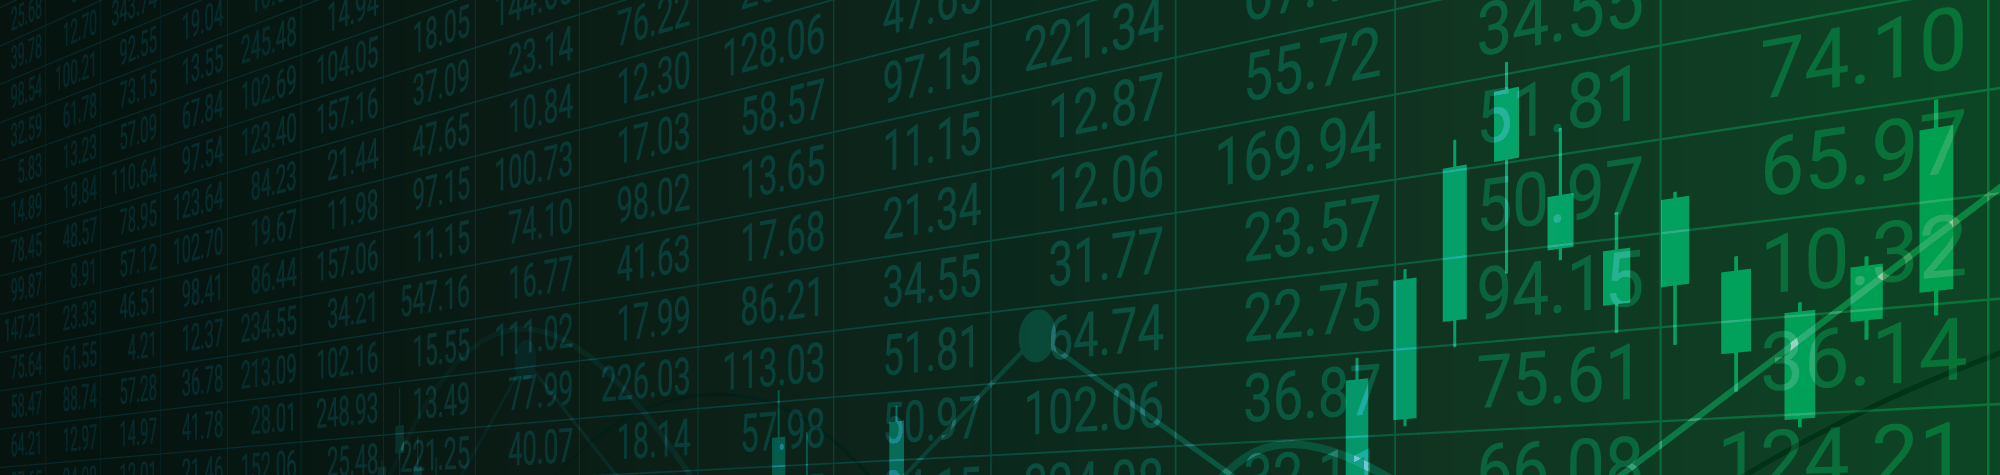 Cash Equities Trading Landscape: 6 Trends to Watch in 2021